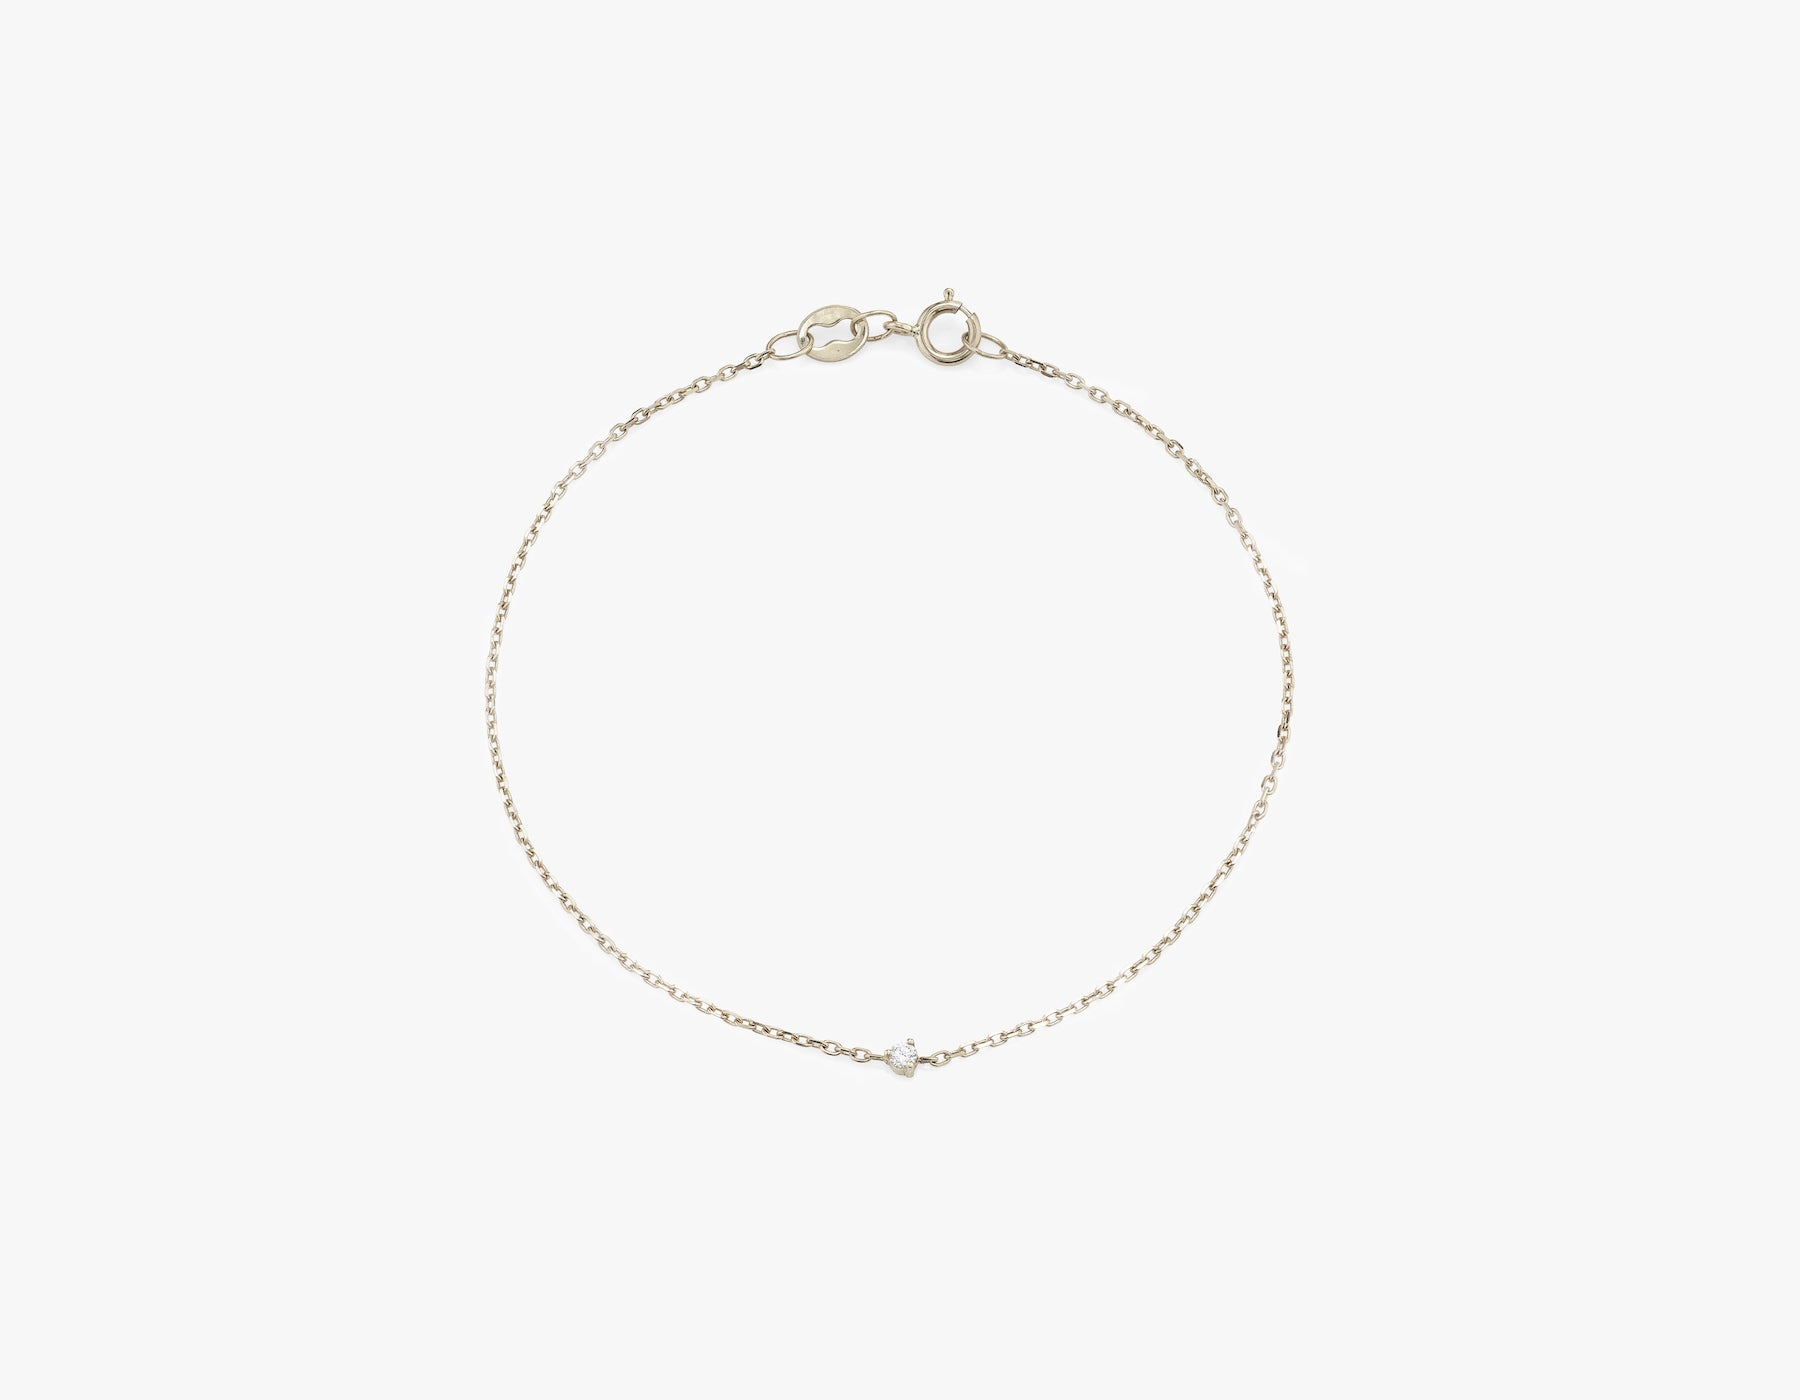 Vrai 14k Solid gold dainty Tiny Diamond Bracelet with spring ring clasp, 14K White Gold